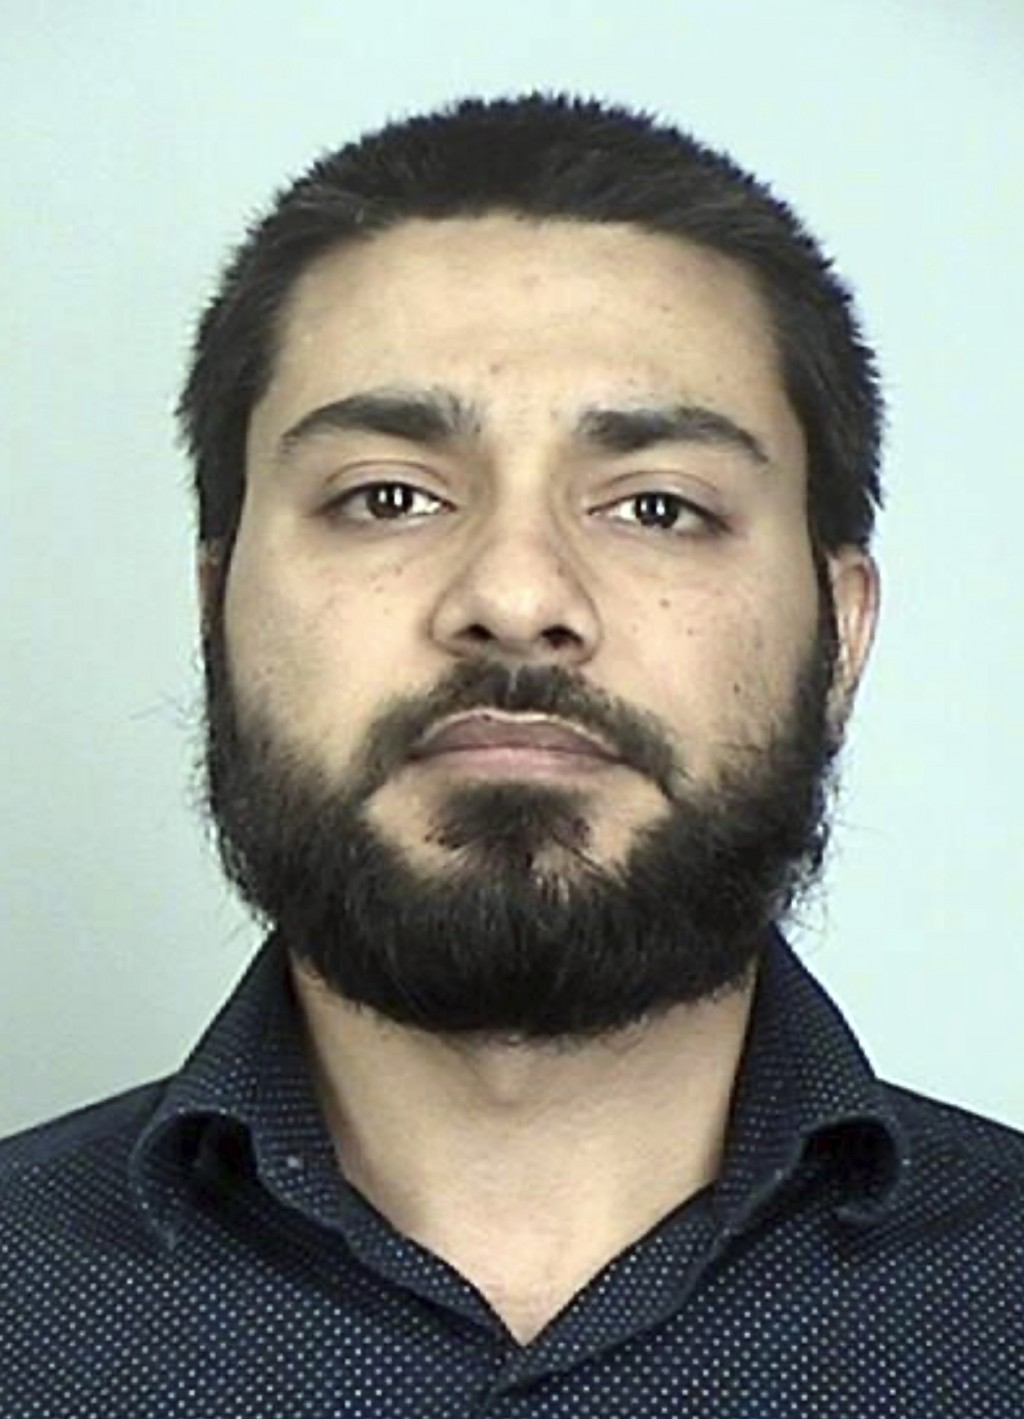 This booking photo provided by the Sherburne County Sheriff shows Muhammad Masood.  A psychological exam was ordered Wednesday, Sept. 16, 2020, for Ma...